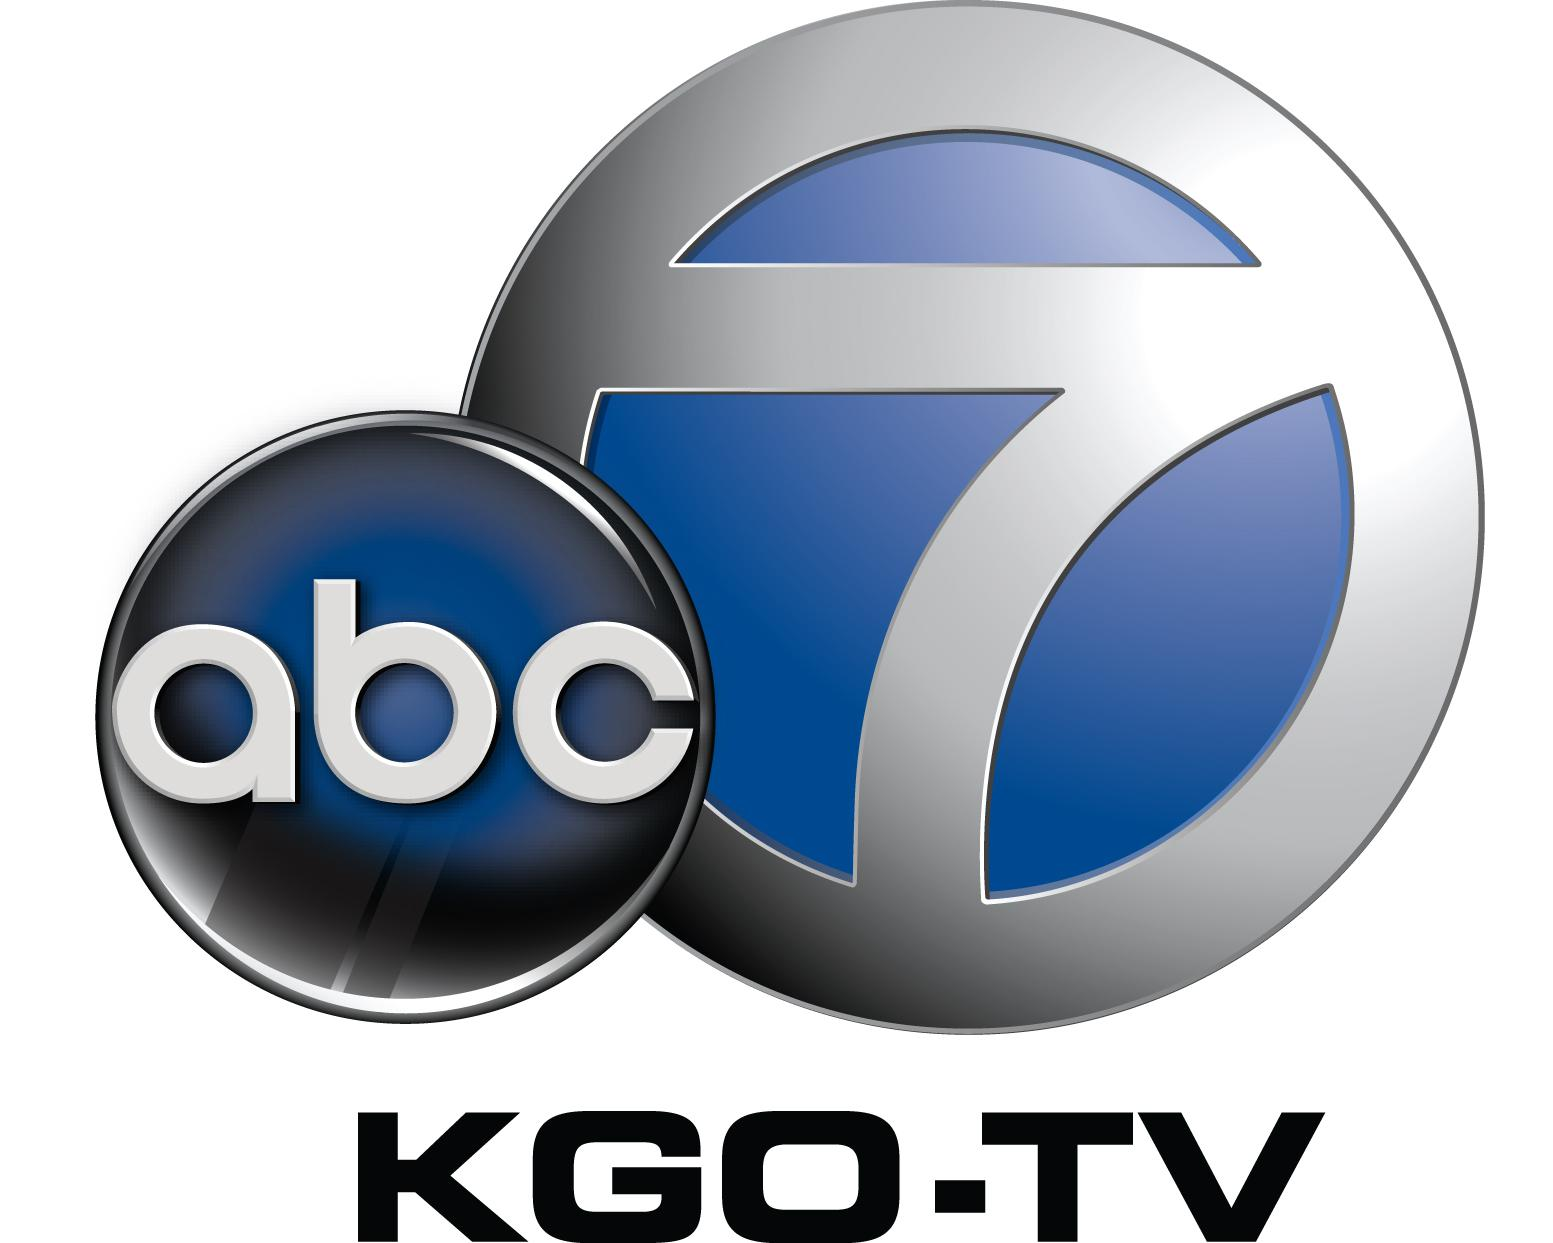 kgo-tv-color-logo.jpg